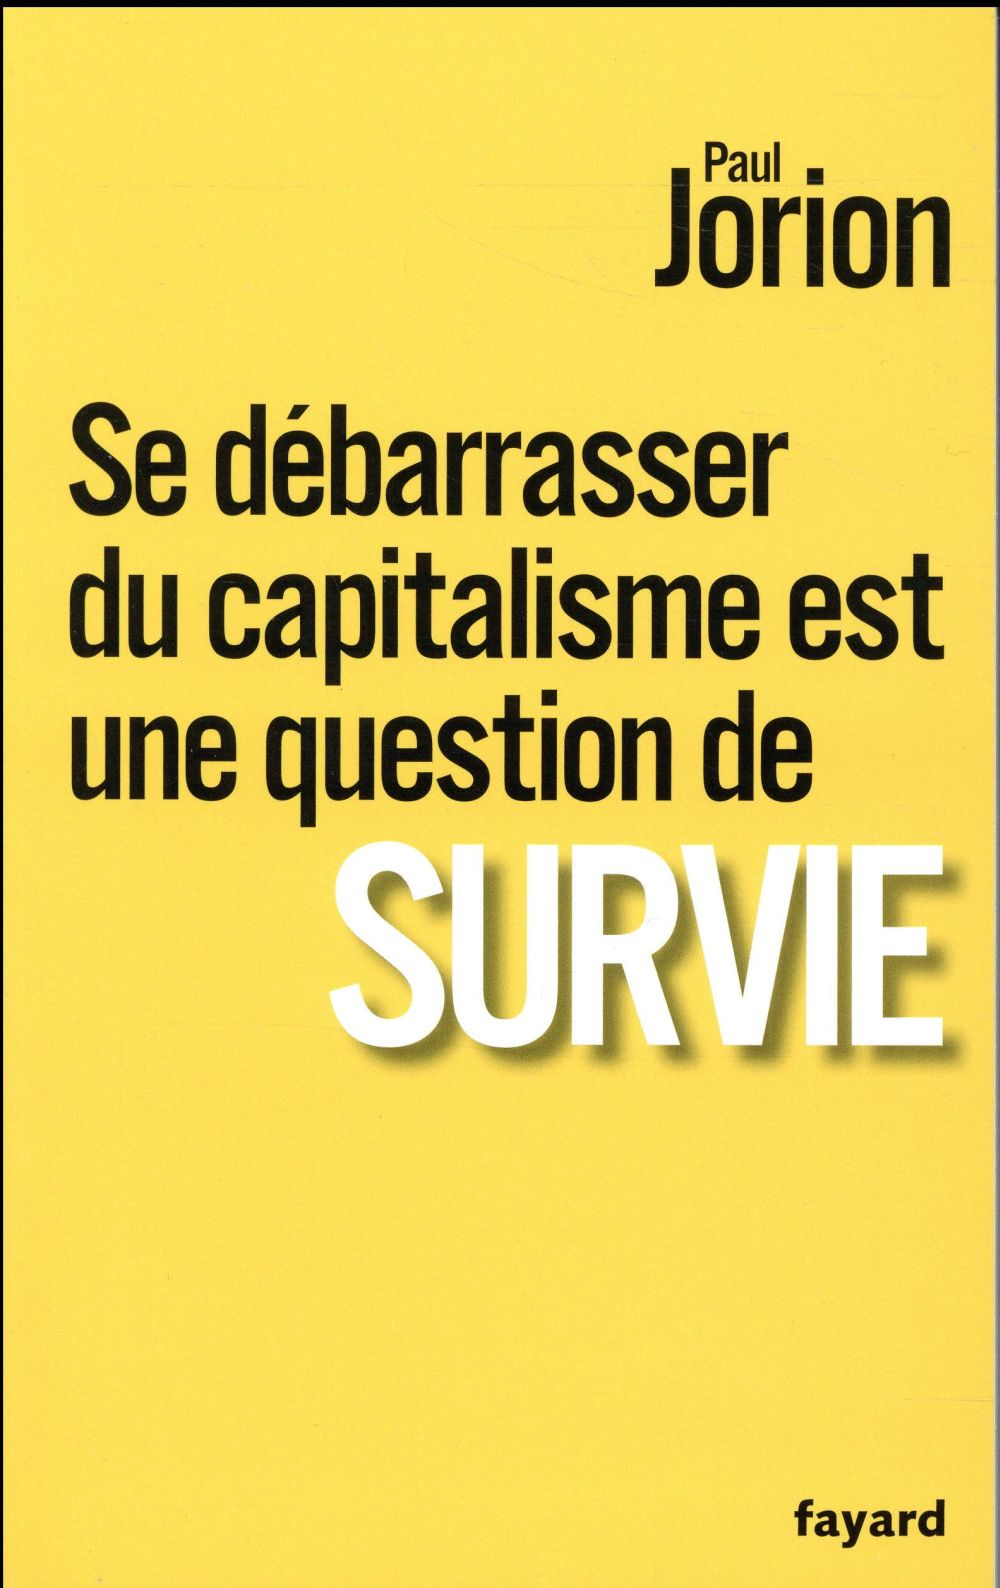 SE DEBARRASSER DU CAPITALISME EST UNE QUESTION DE SURVIE